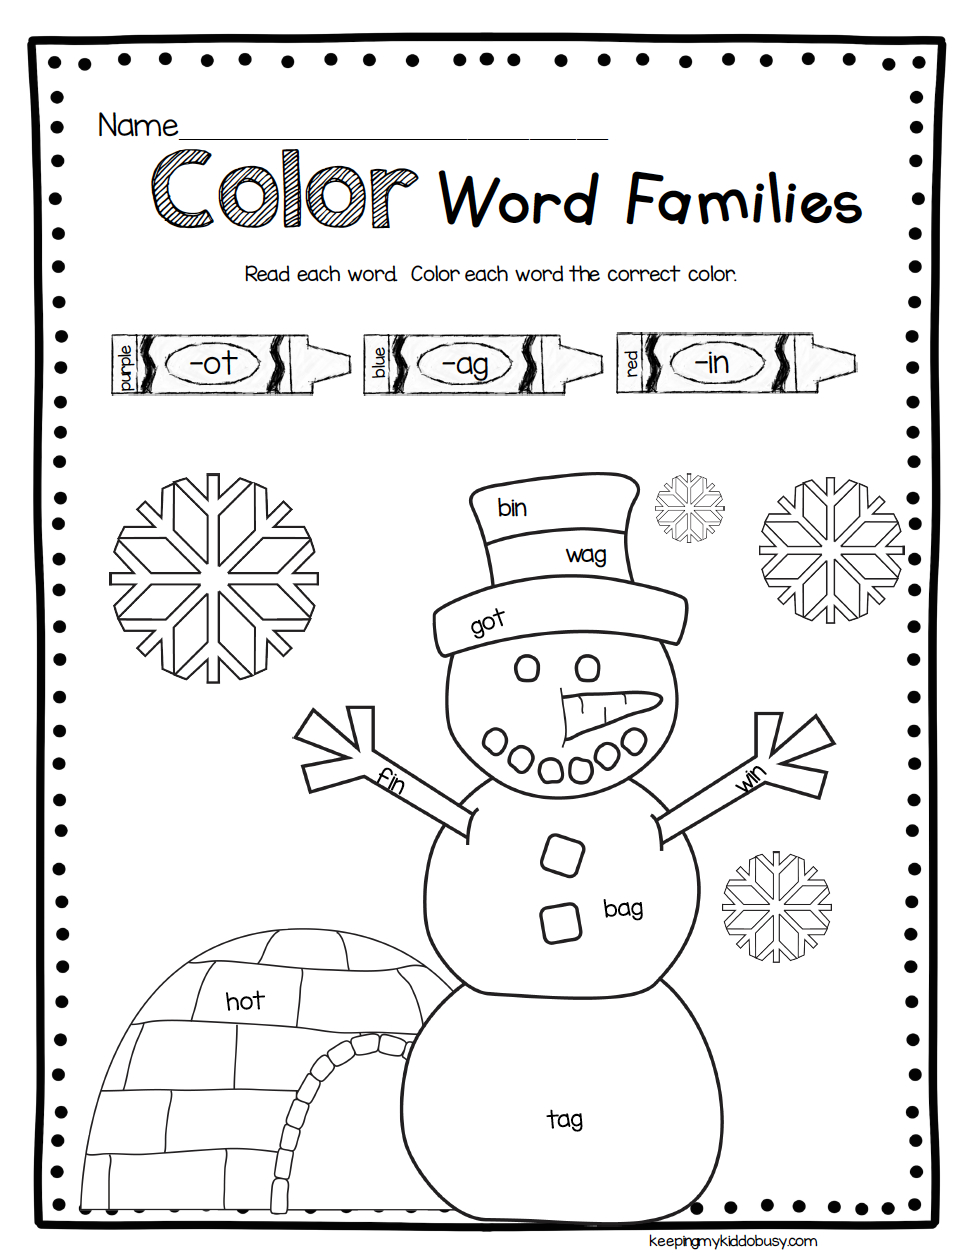 Snowman Math And Reading Activities - Winter Worksheets | Snowman Worksheet Printables